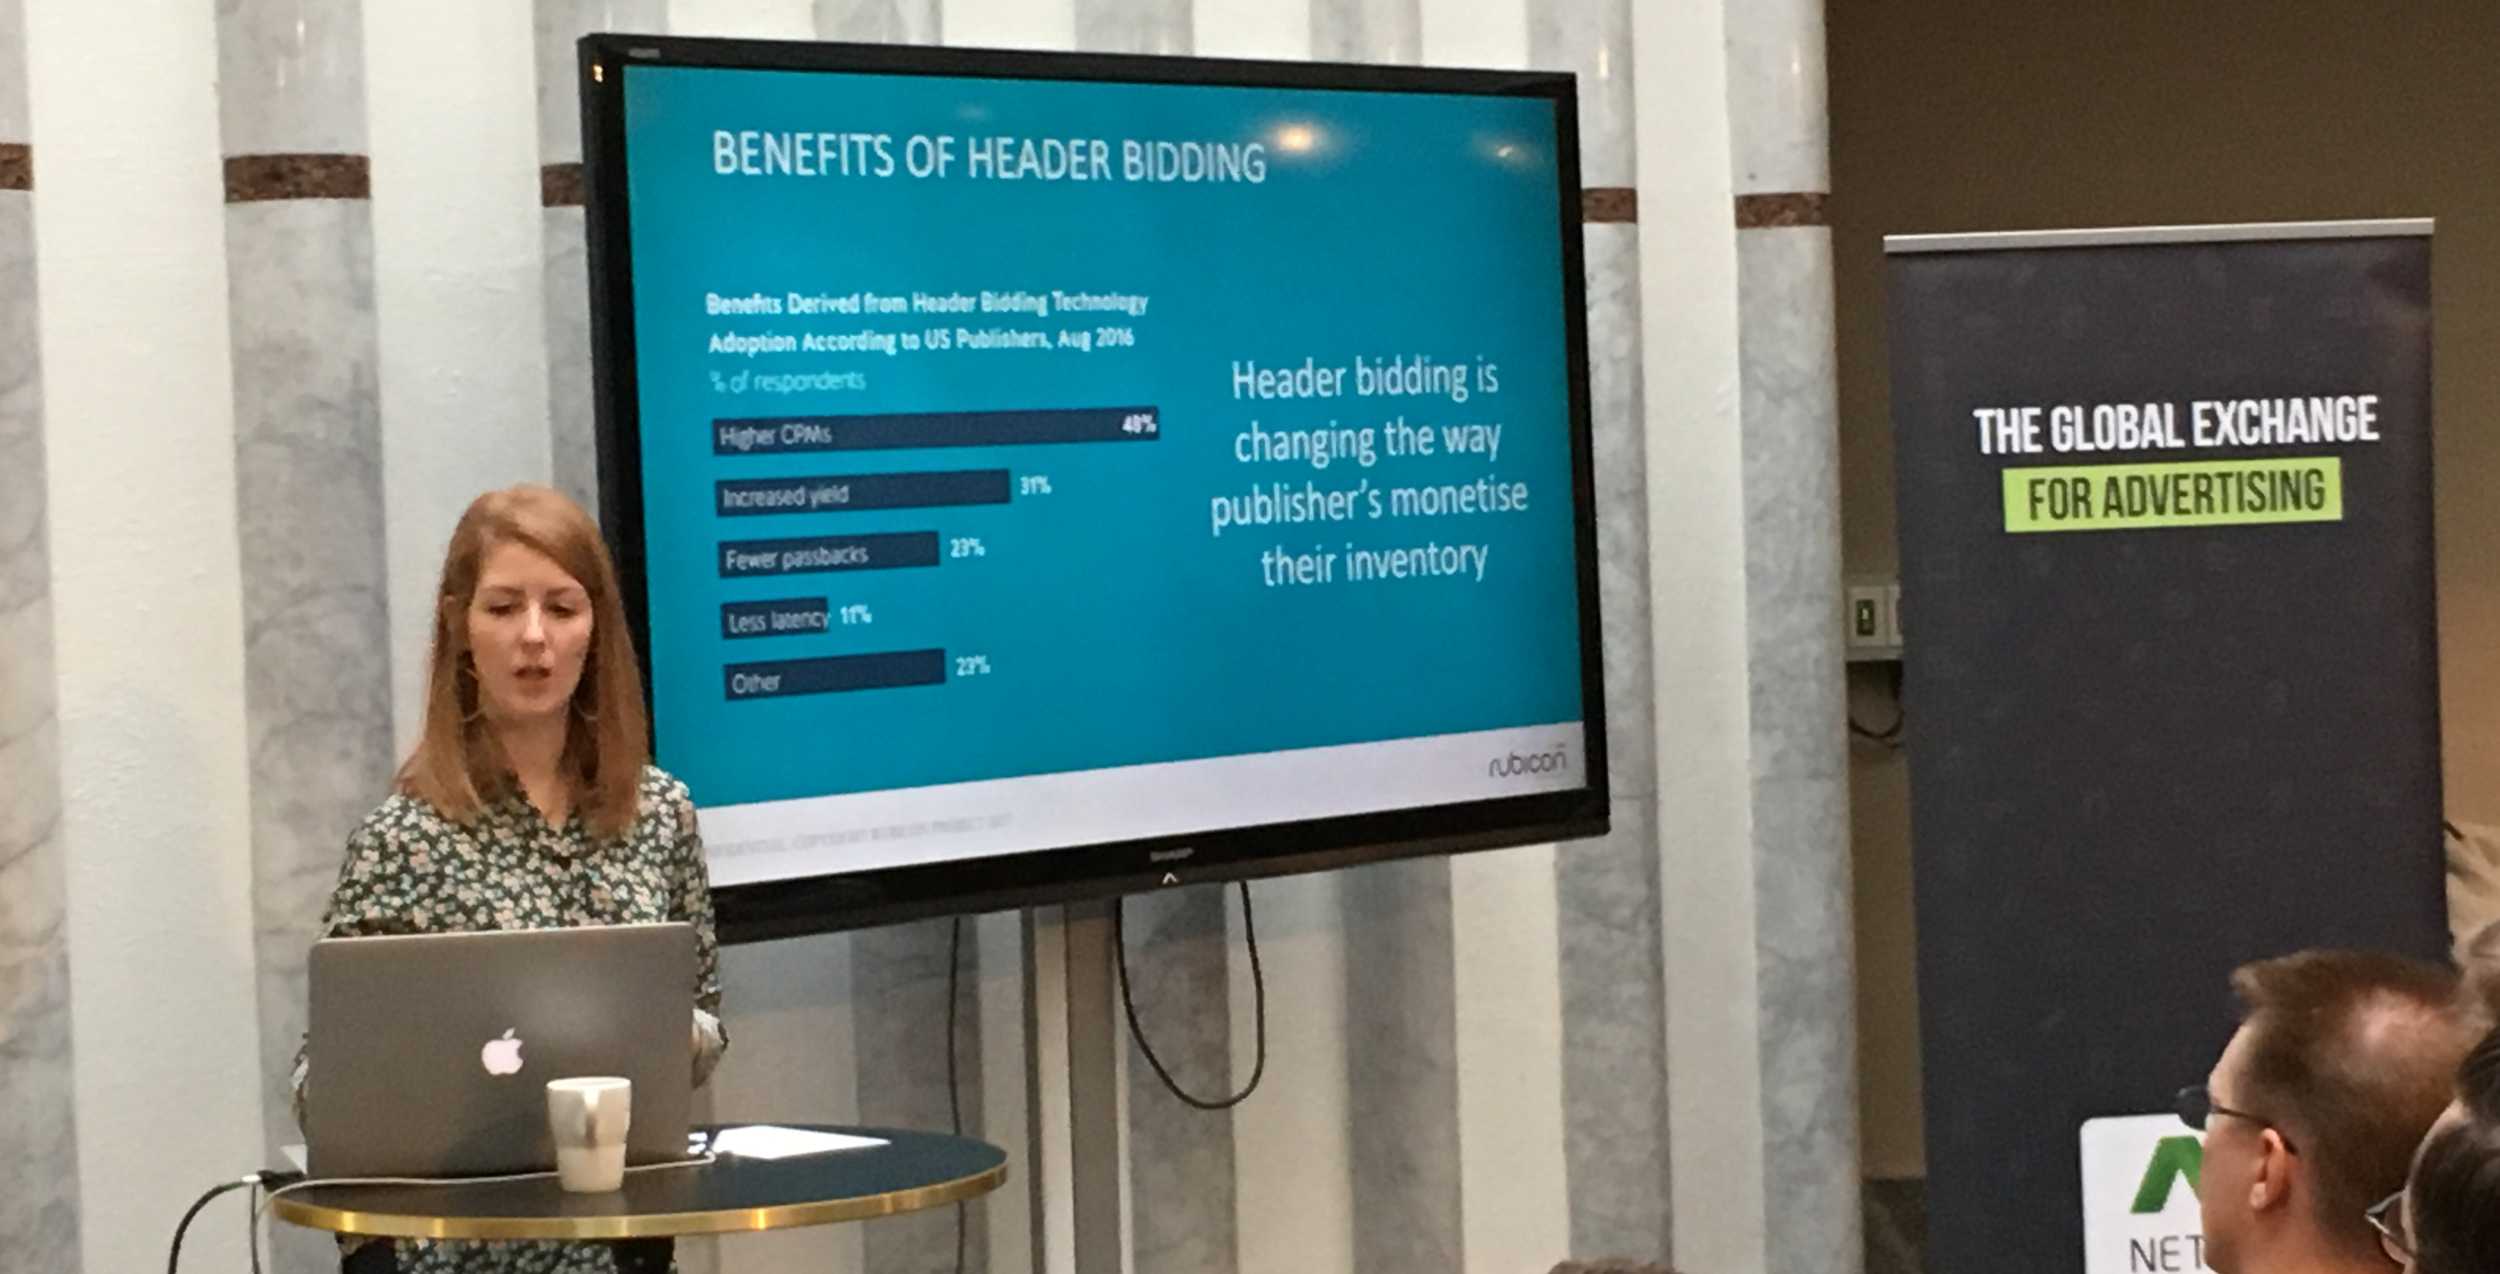 Rubicon's Director of Mobile & Video EMEA Flora Evans covers the benefits of header bidding